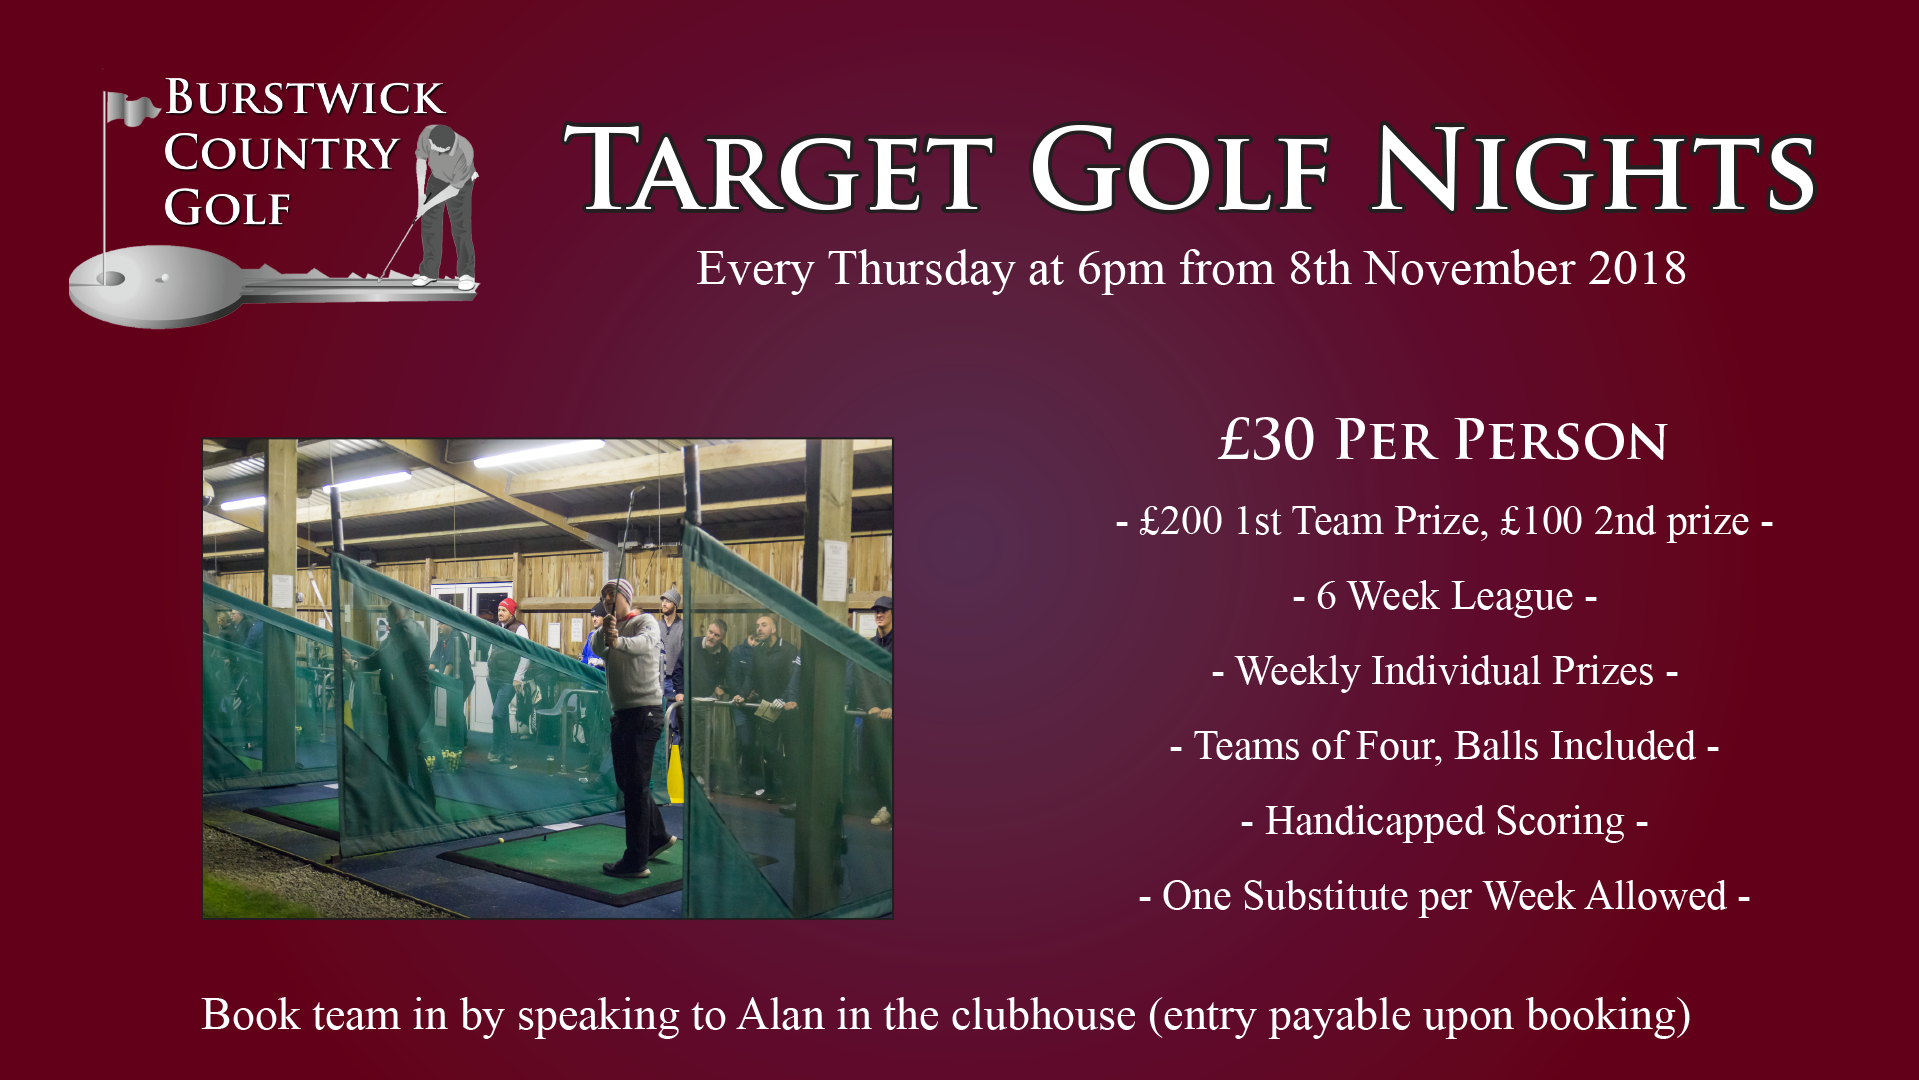 Target Golf Nights near Hull, East Yorkshire